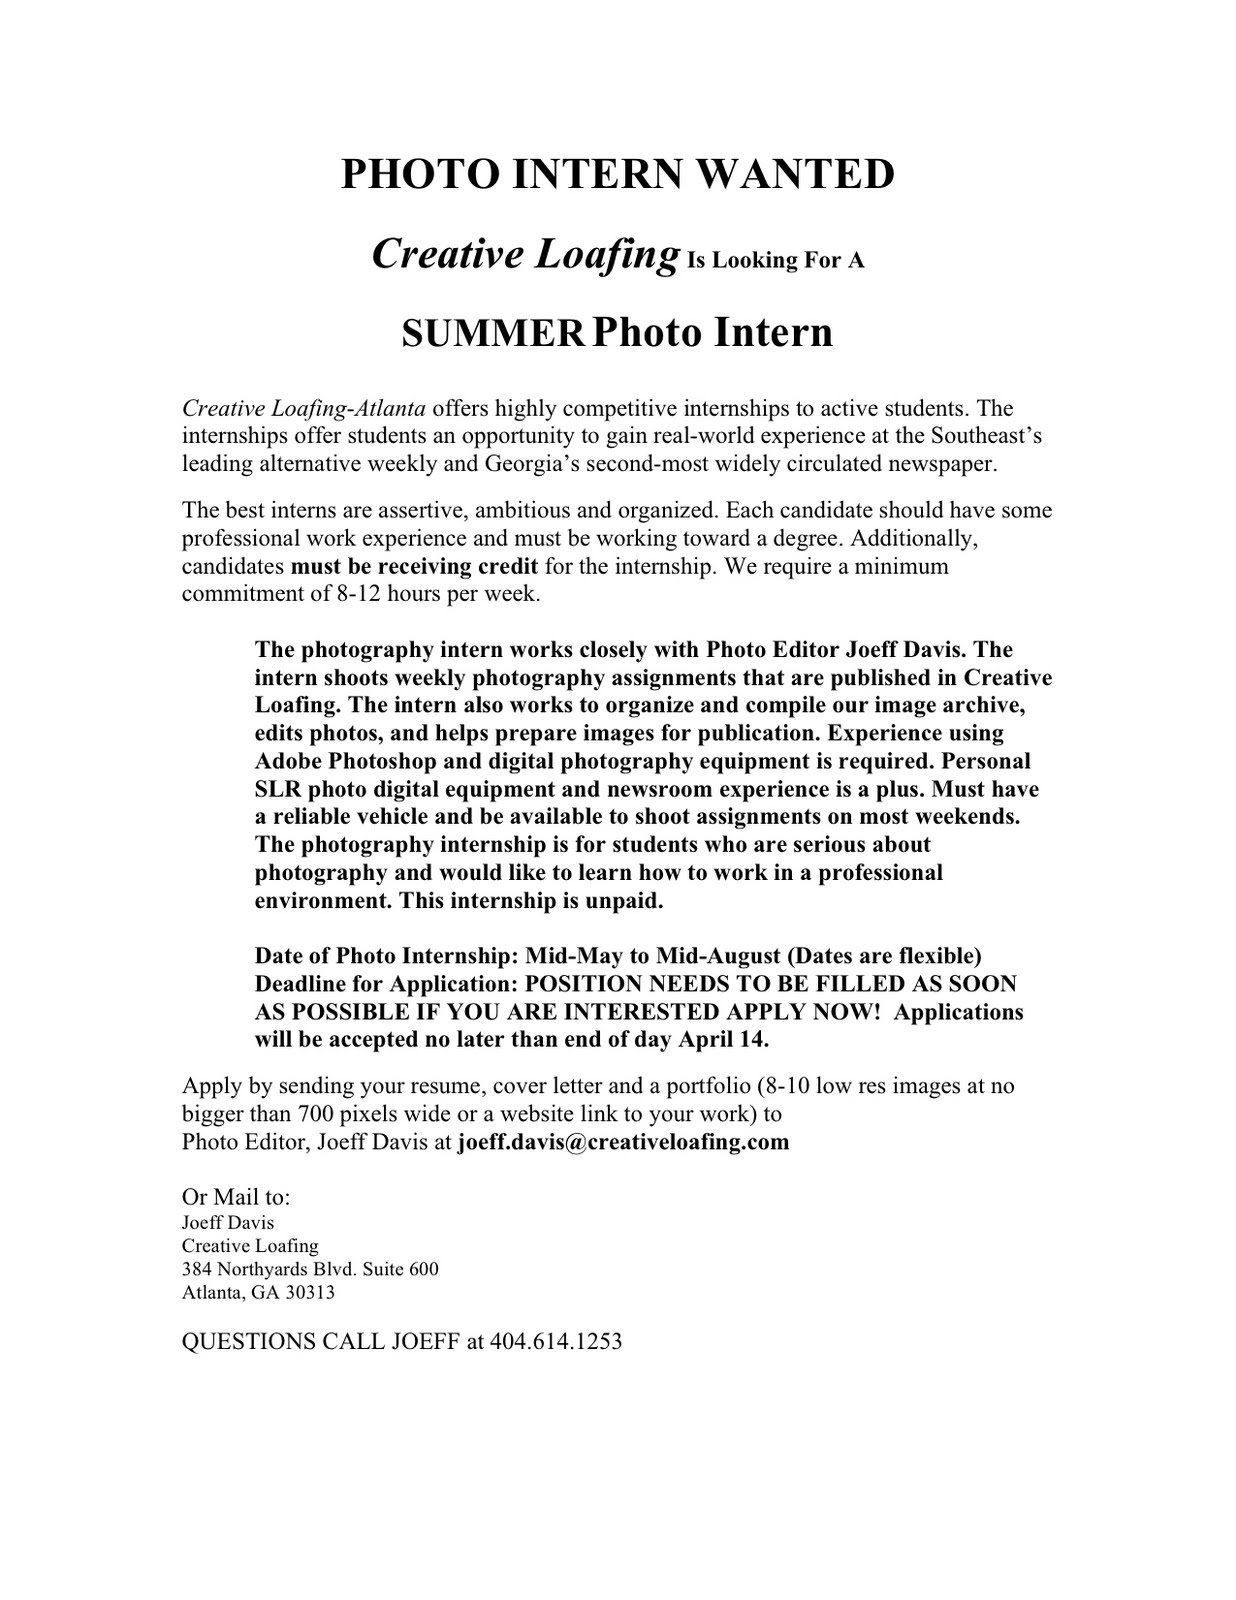 Dental Assistant Cover Letter. Dental Assistant Cover Letter Sample ...